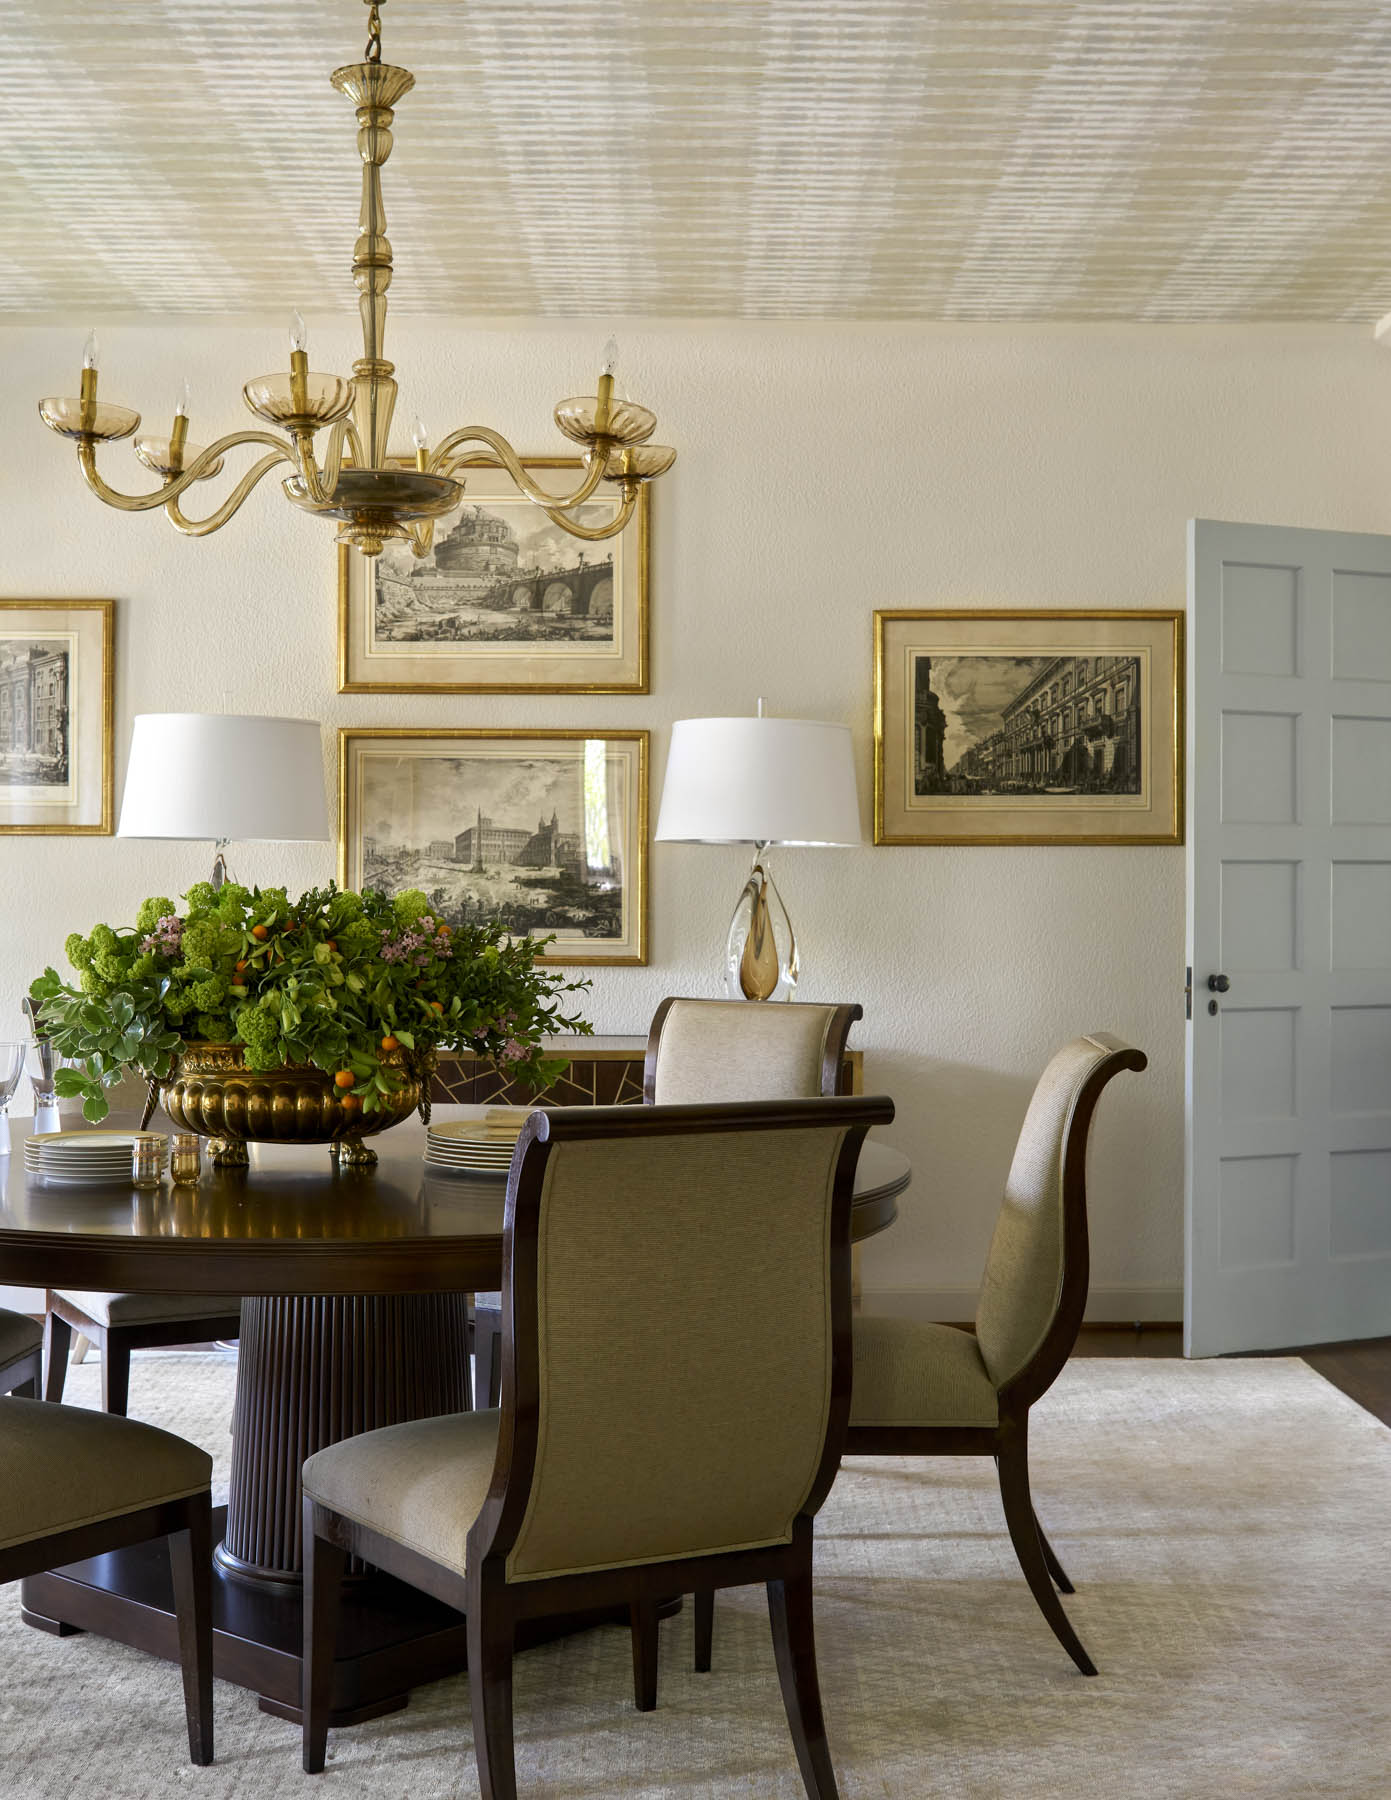 We repainted the walls in the Kessler Park home with mostly neutral colors. In the dining room, beige is a calming backdrop for the gold-framed antique prints. Before, the ceiling was also a dark terracotta color. Covering it with a light wallpaper helped the room feel more expansive.